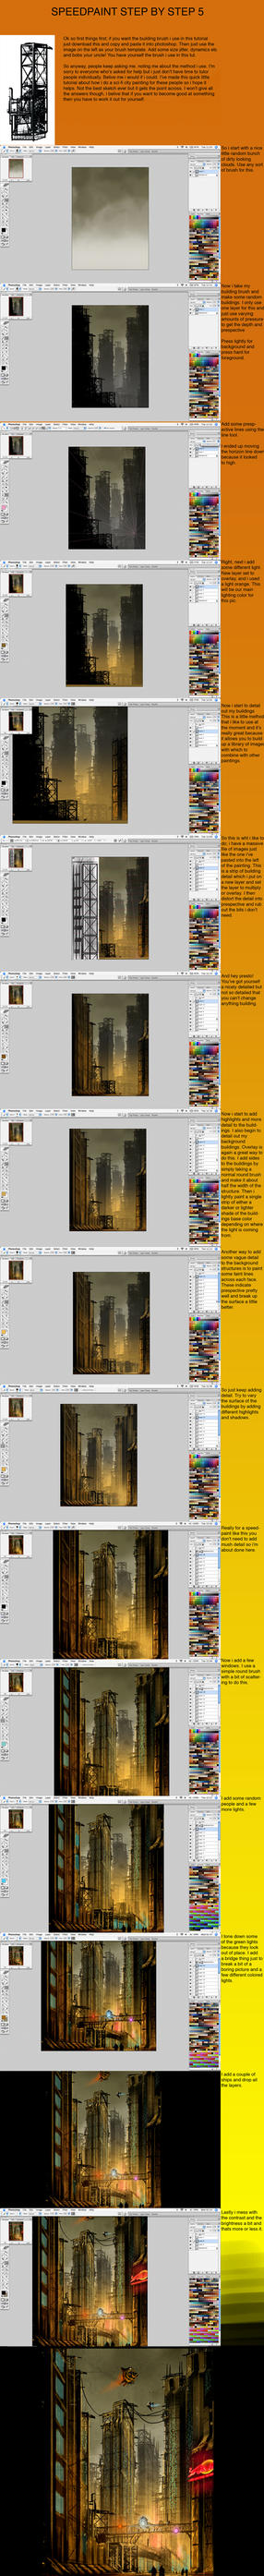 .:Speedpaint Step by Step 5:. by David-Holland